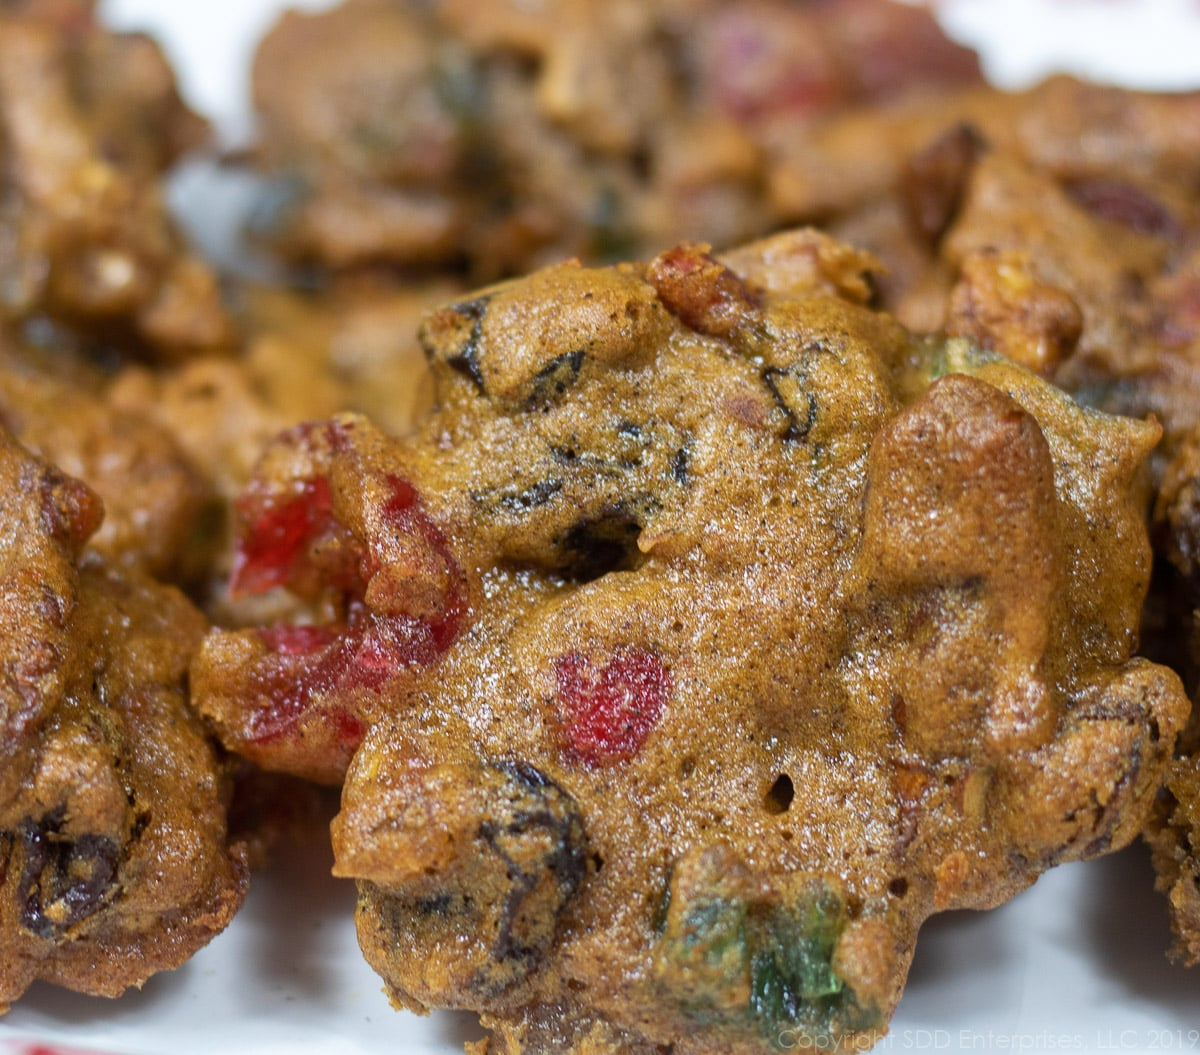 several fruitcake cookies, or Christmas Lizzies on a white plate